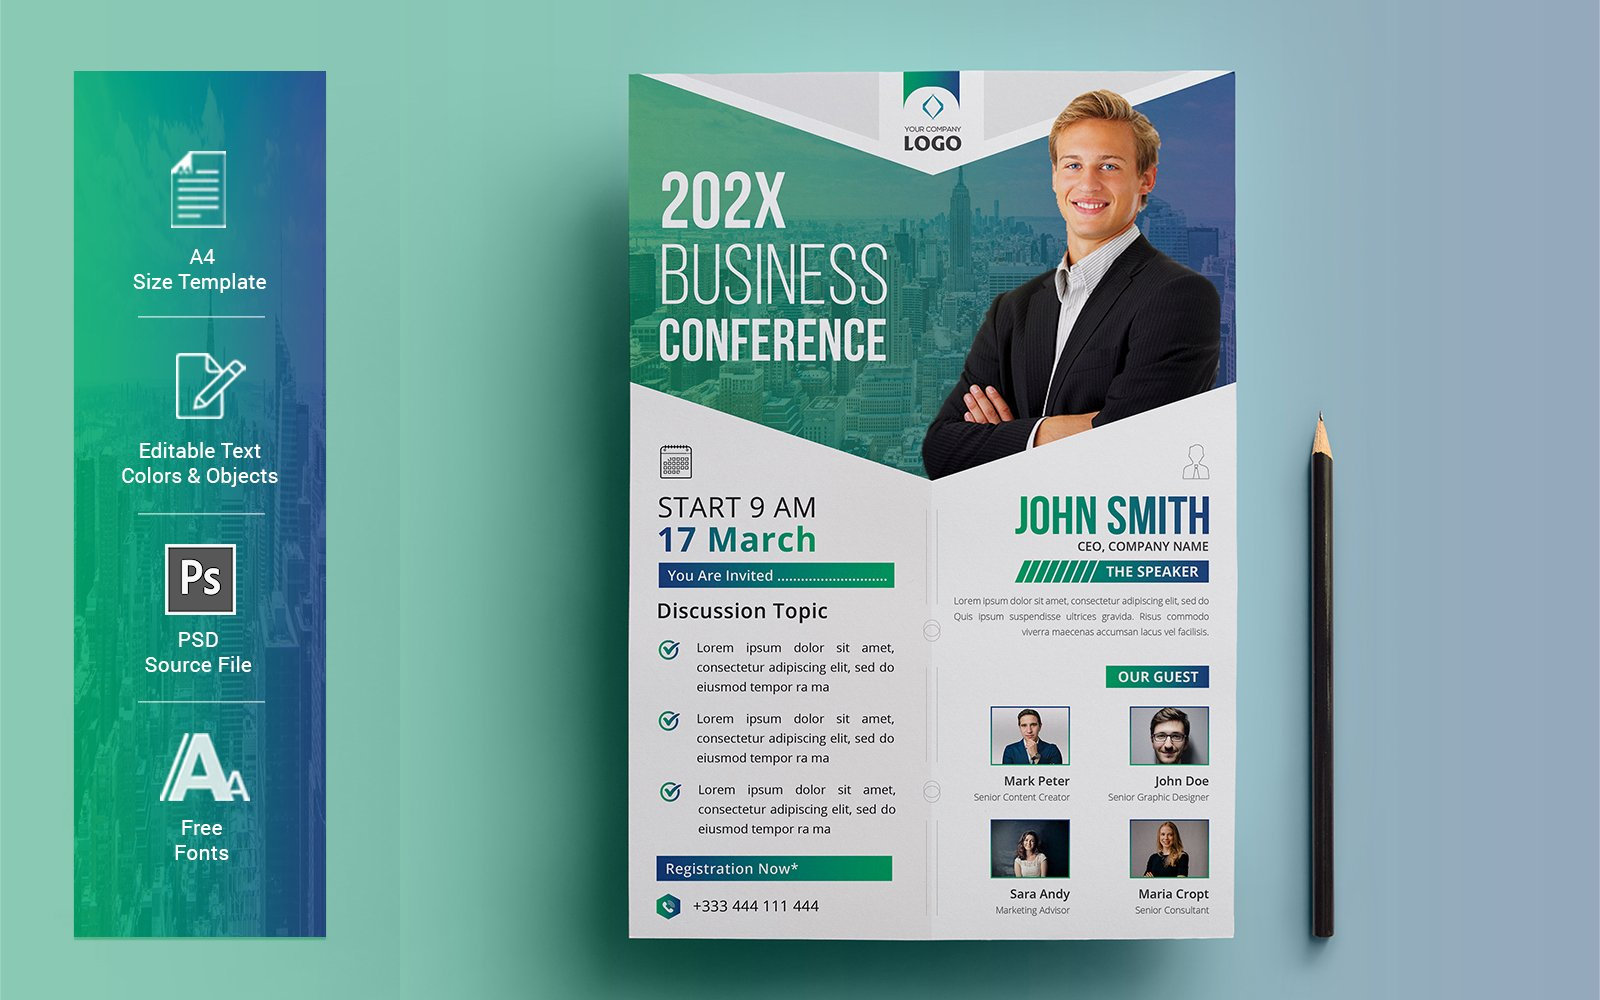 Business Conference Flyer Corporate Identity Template